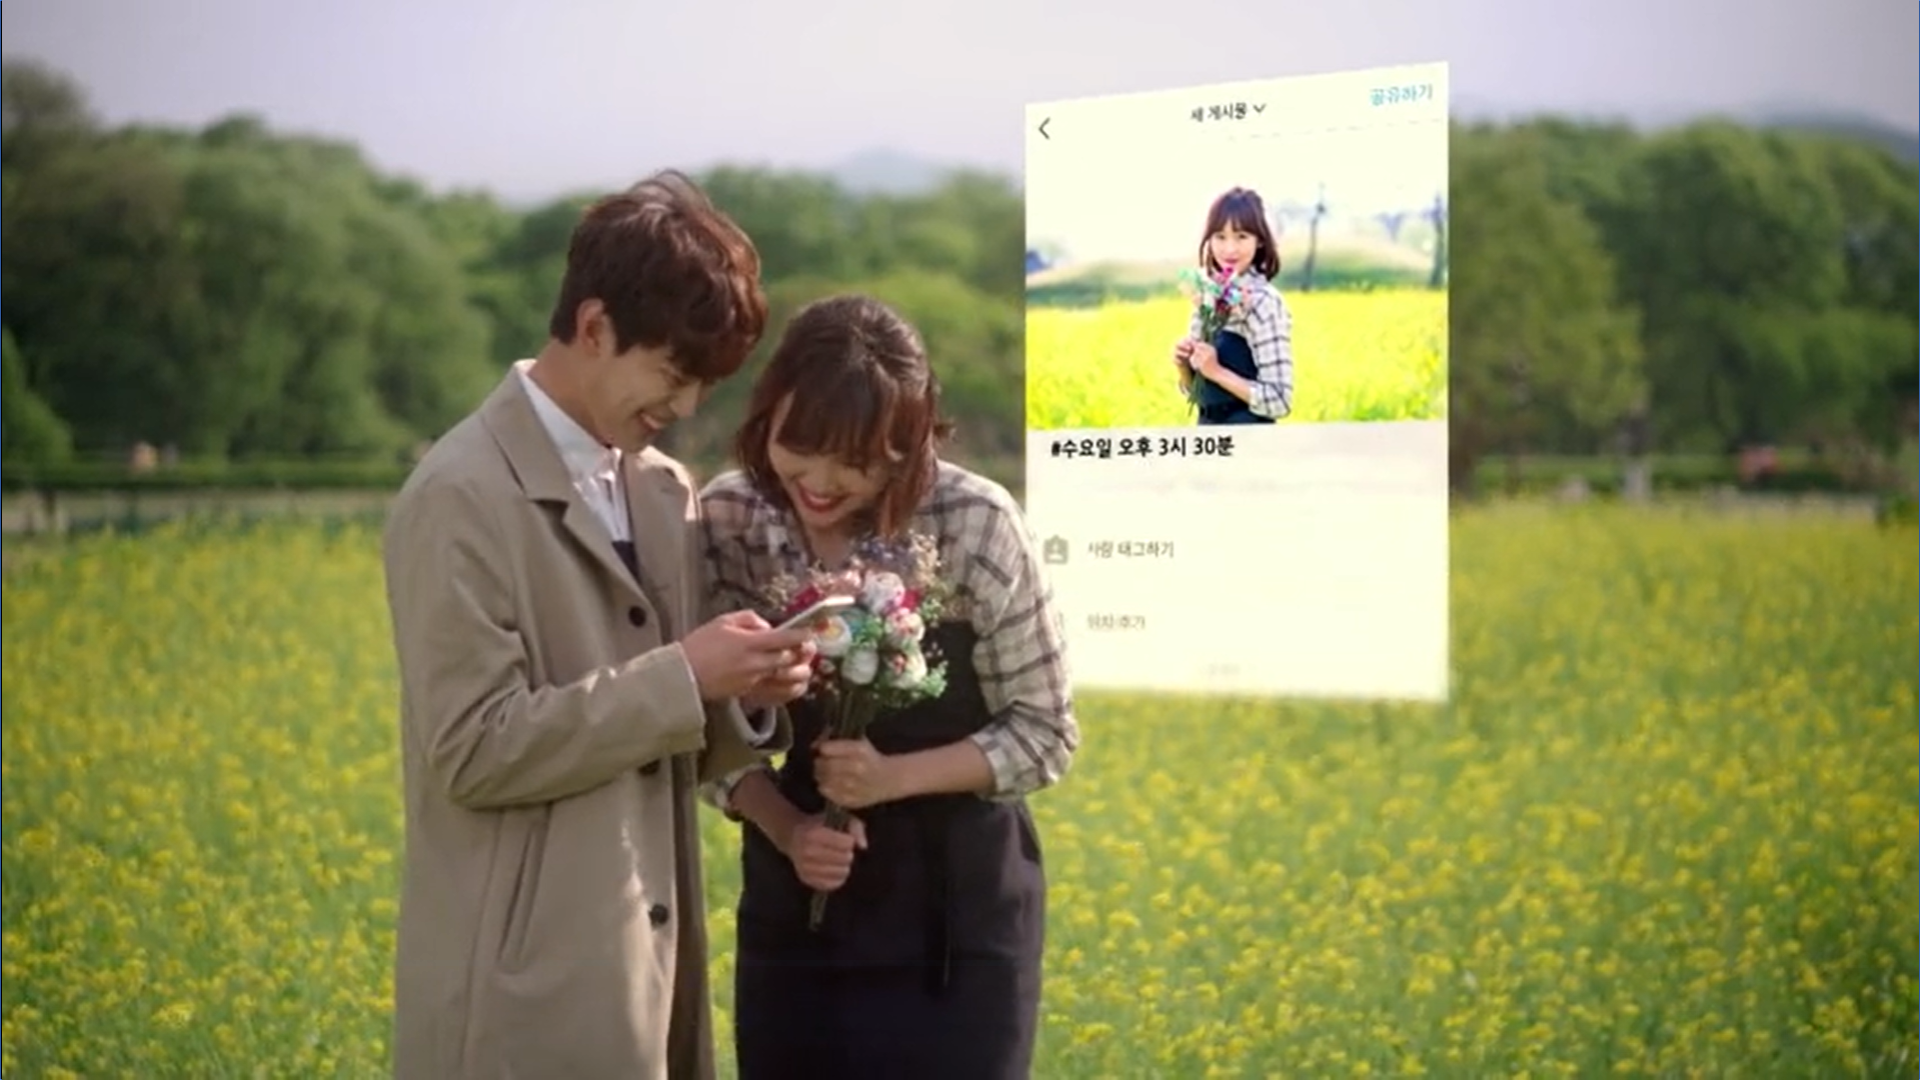 Wednesday 3:30 PM Yoon Jae-won and Seon Eun-woo together in the flower field